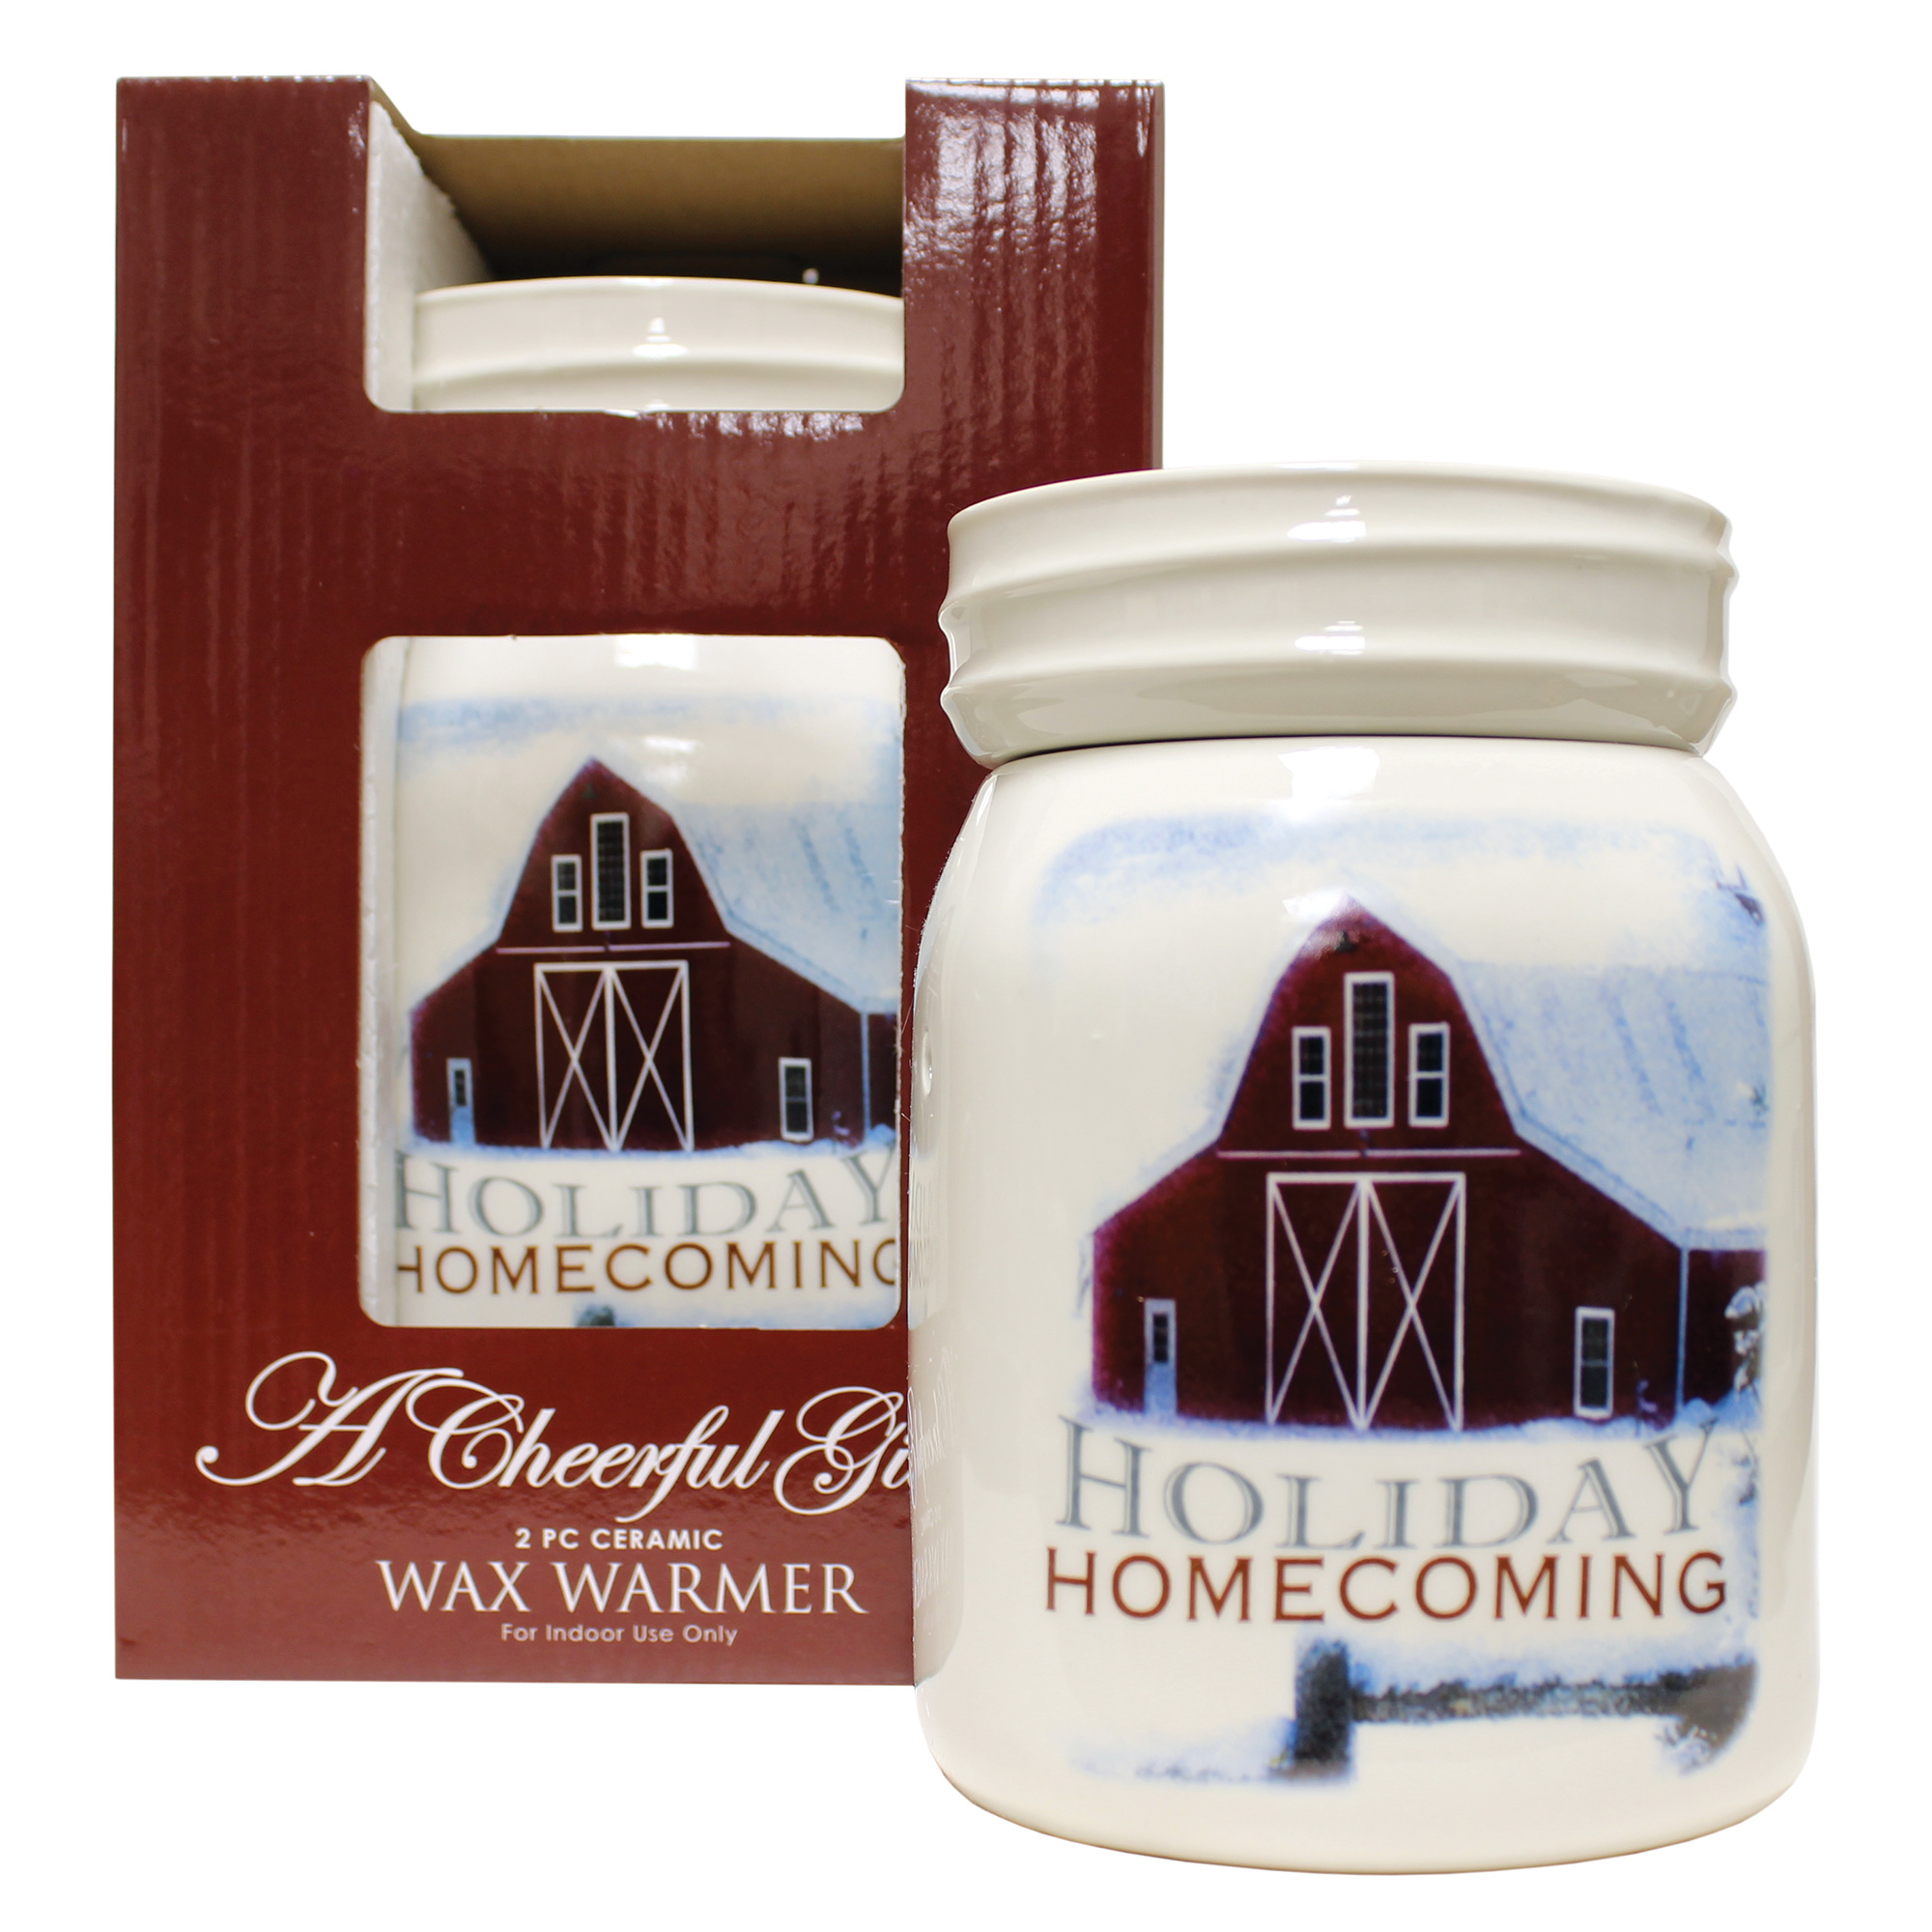 HOLIDAY HOMECOMING TABLE TOP ELECTRIC WAX MELTER